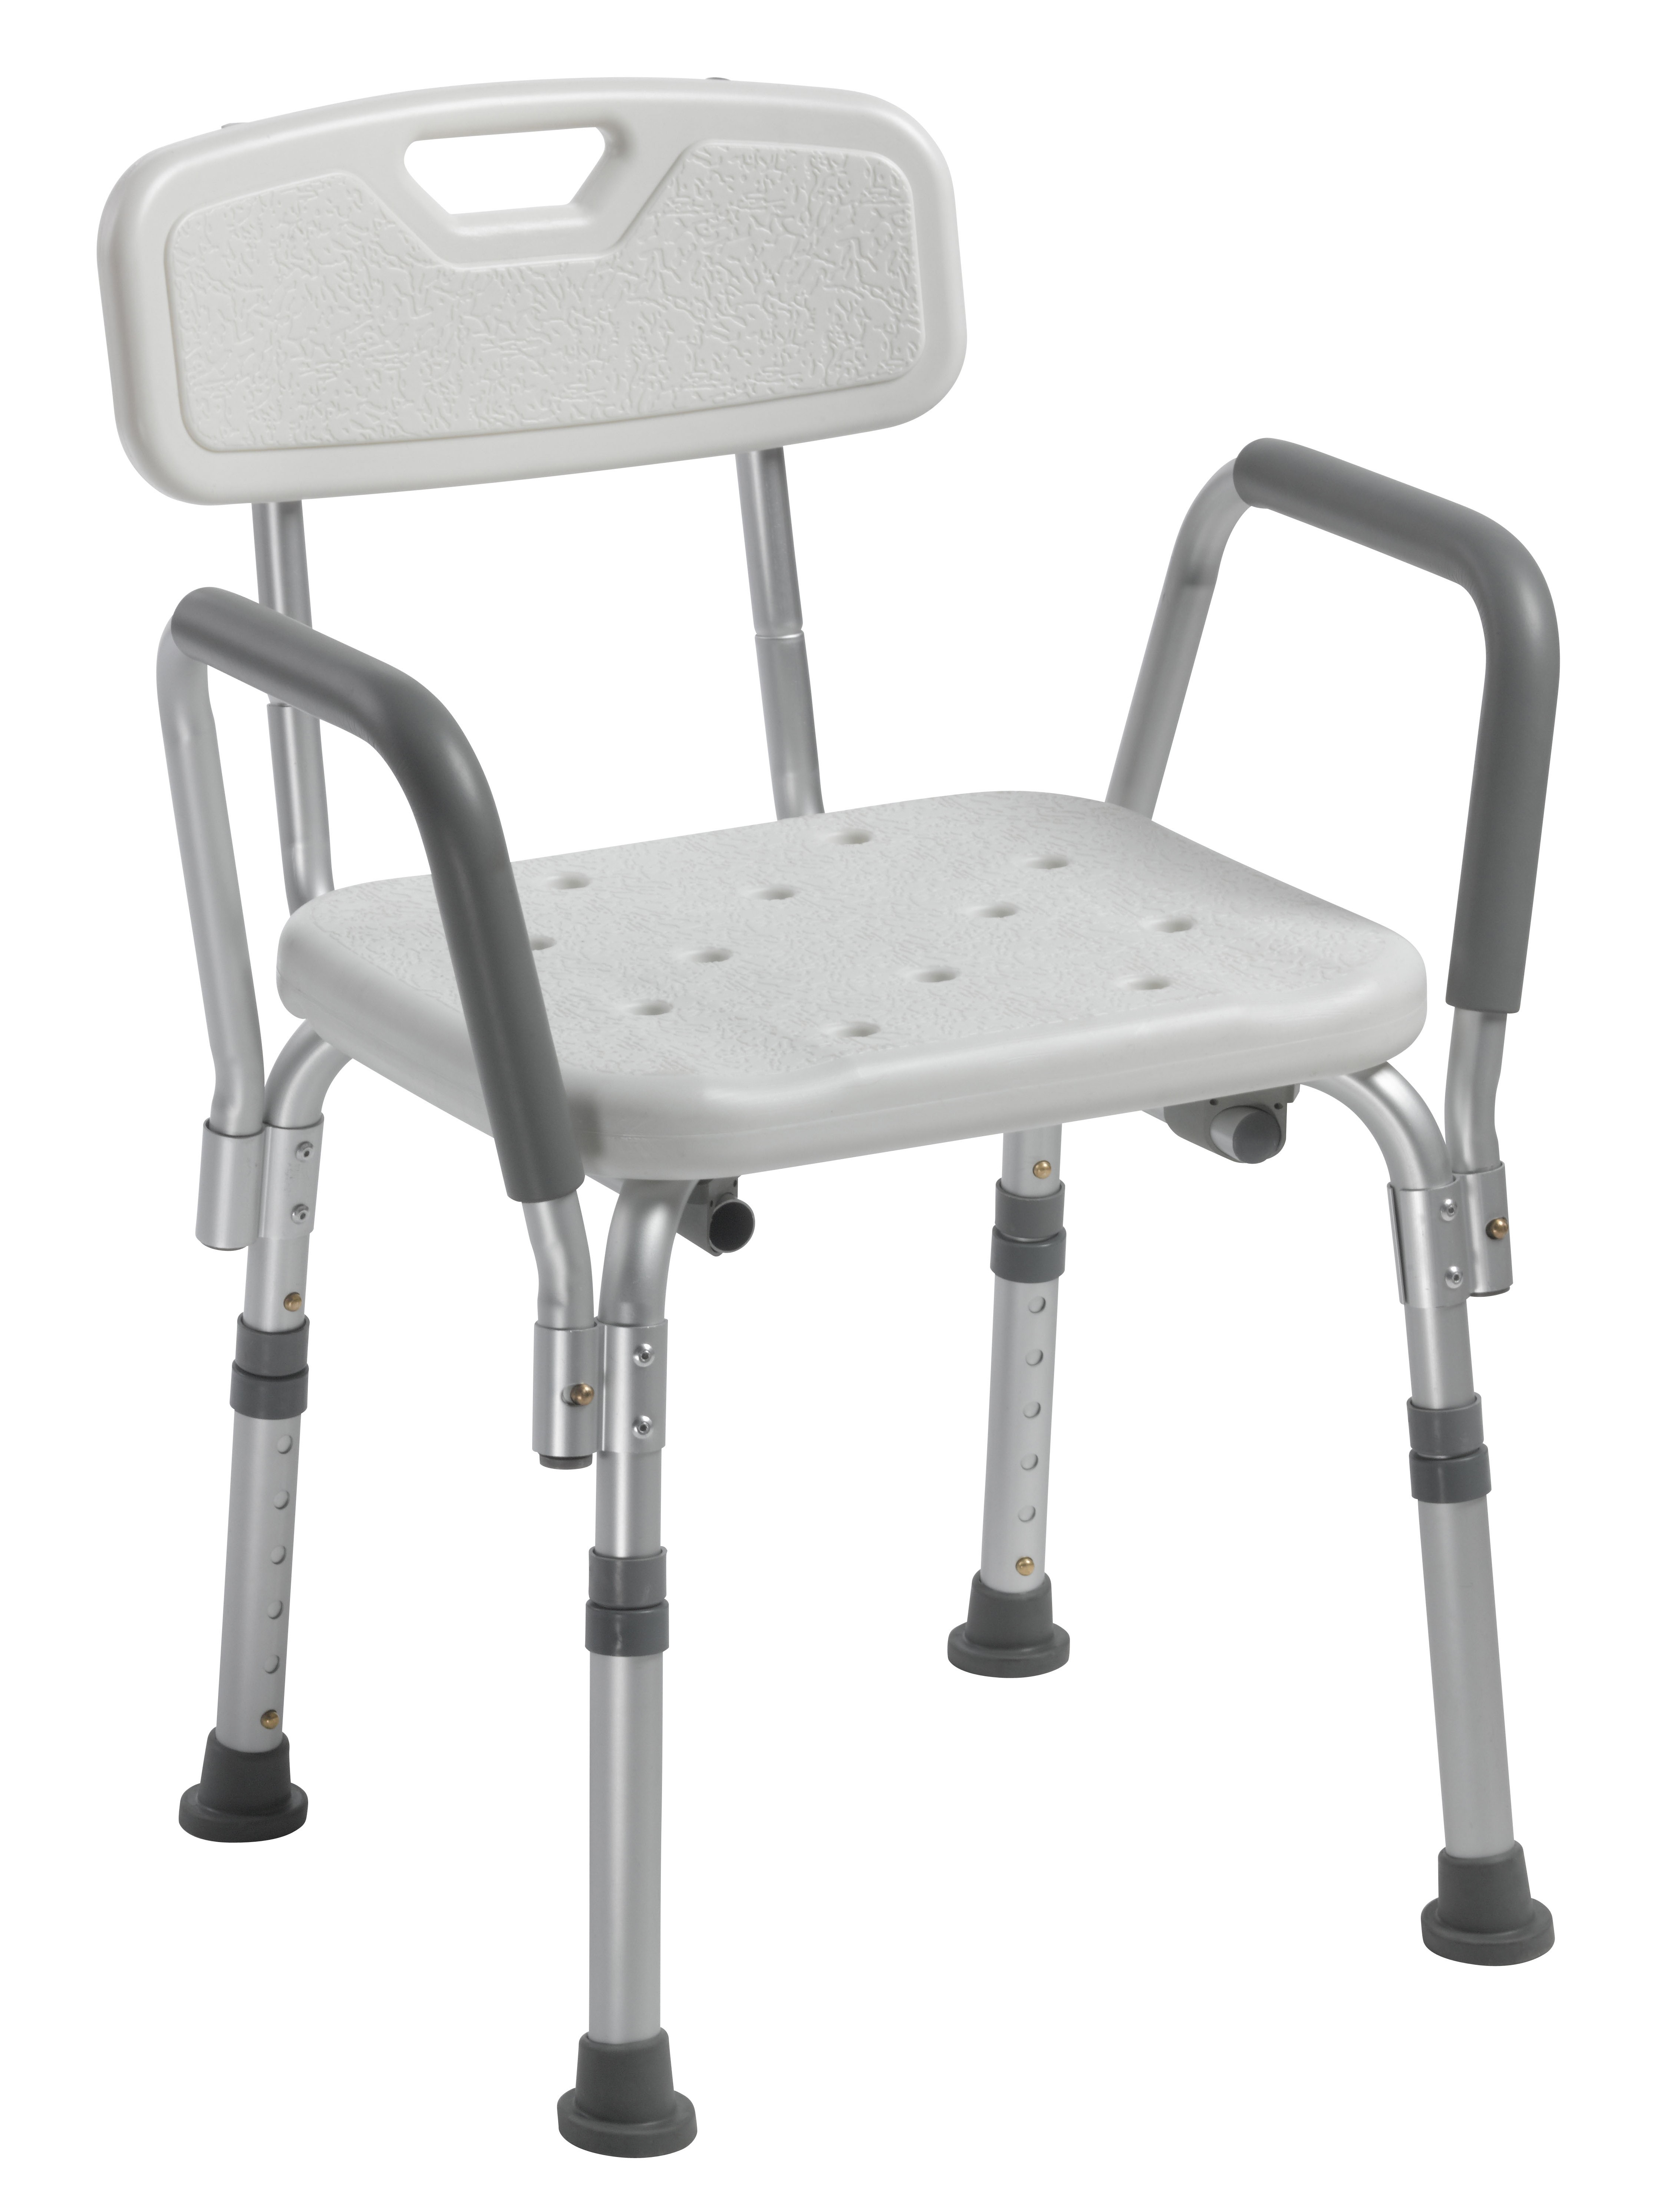 chairs bat and bath home tub handicap arms at disabled bench transfer teak walgreens shower adjustable back for depot with walmart bathroom game chair